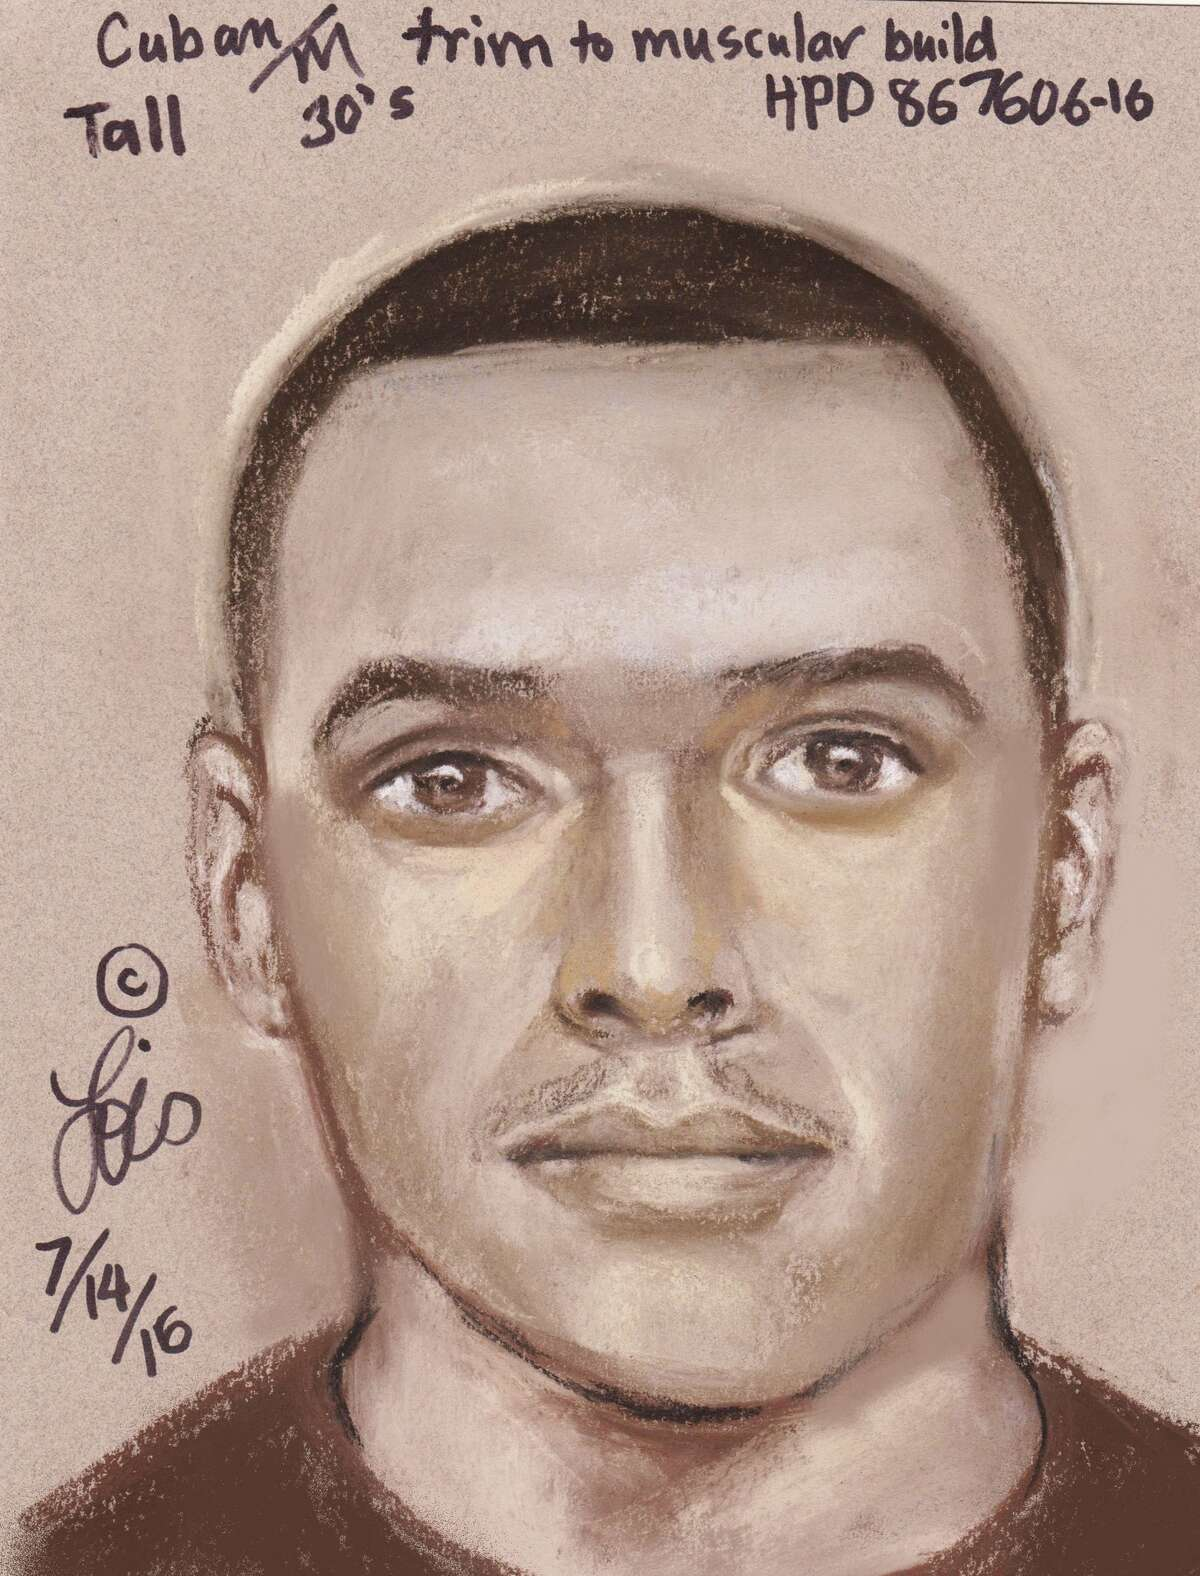 Police have released this composite sketch of the suspect in a machete attack about 2 a.m. July 6, 2016, at 9500 Jaywood near West Gulf Bank. (Houston Police Department)